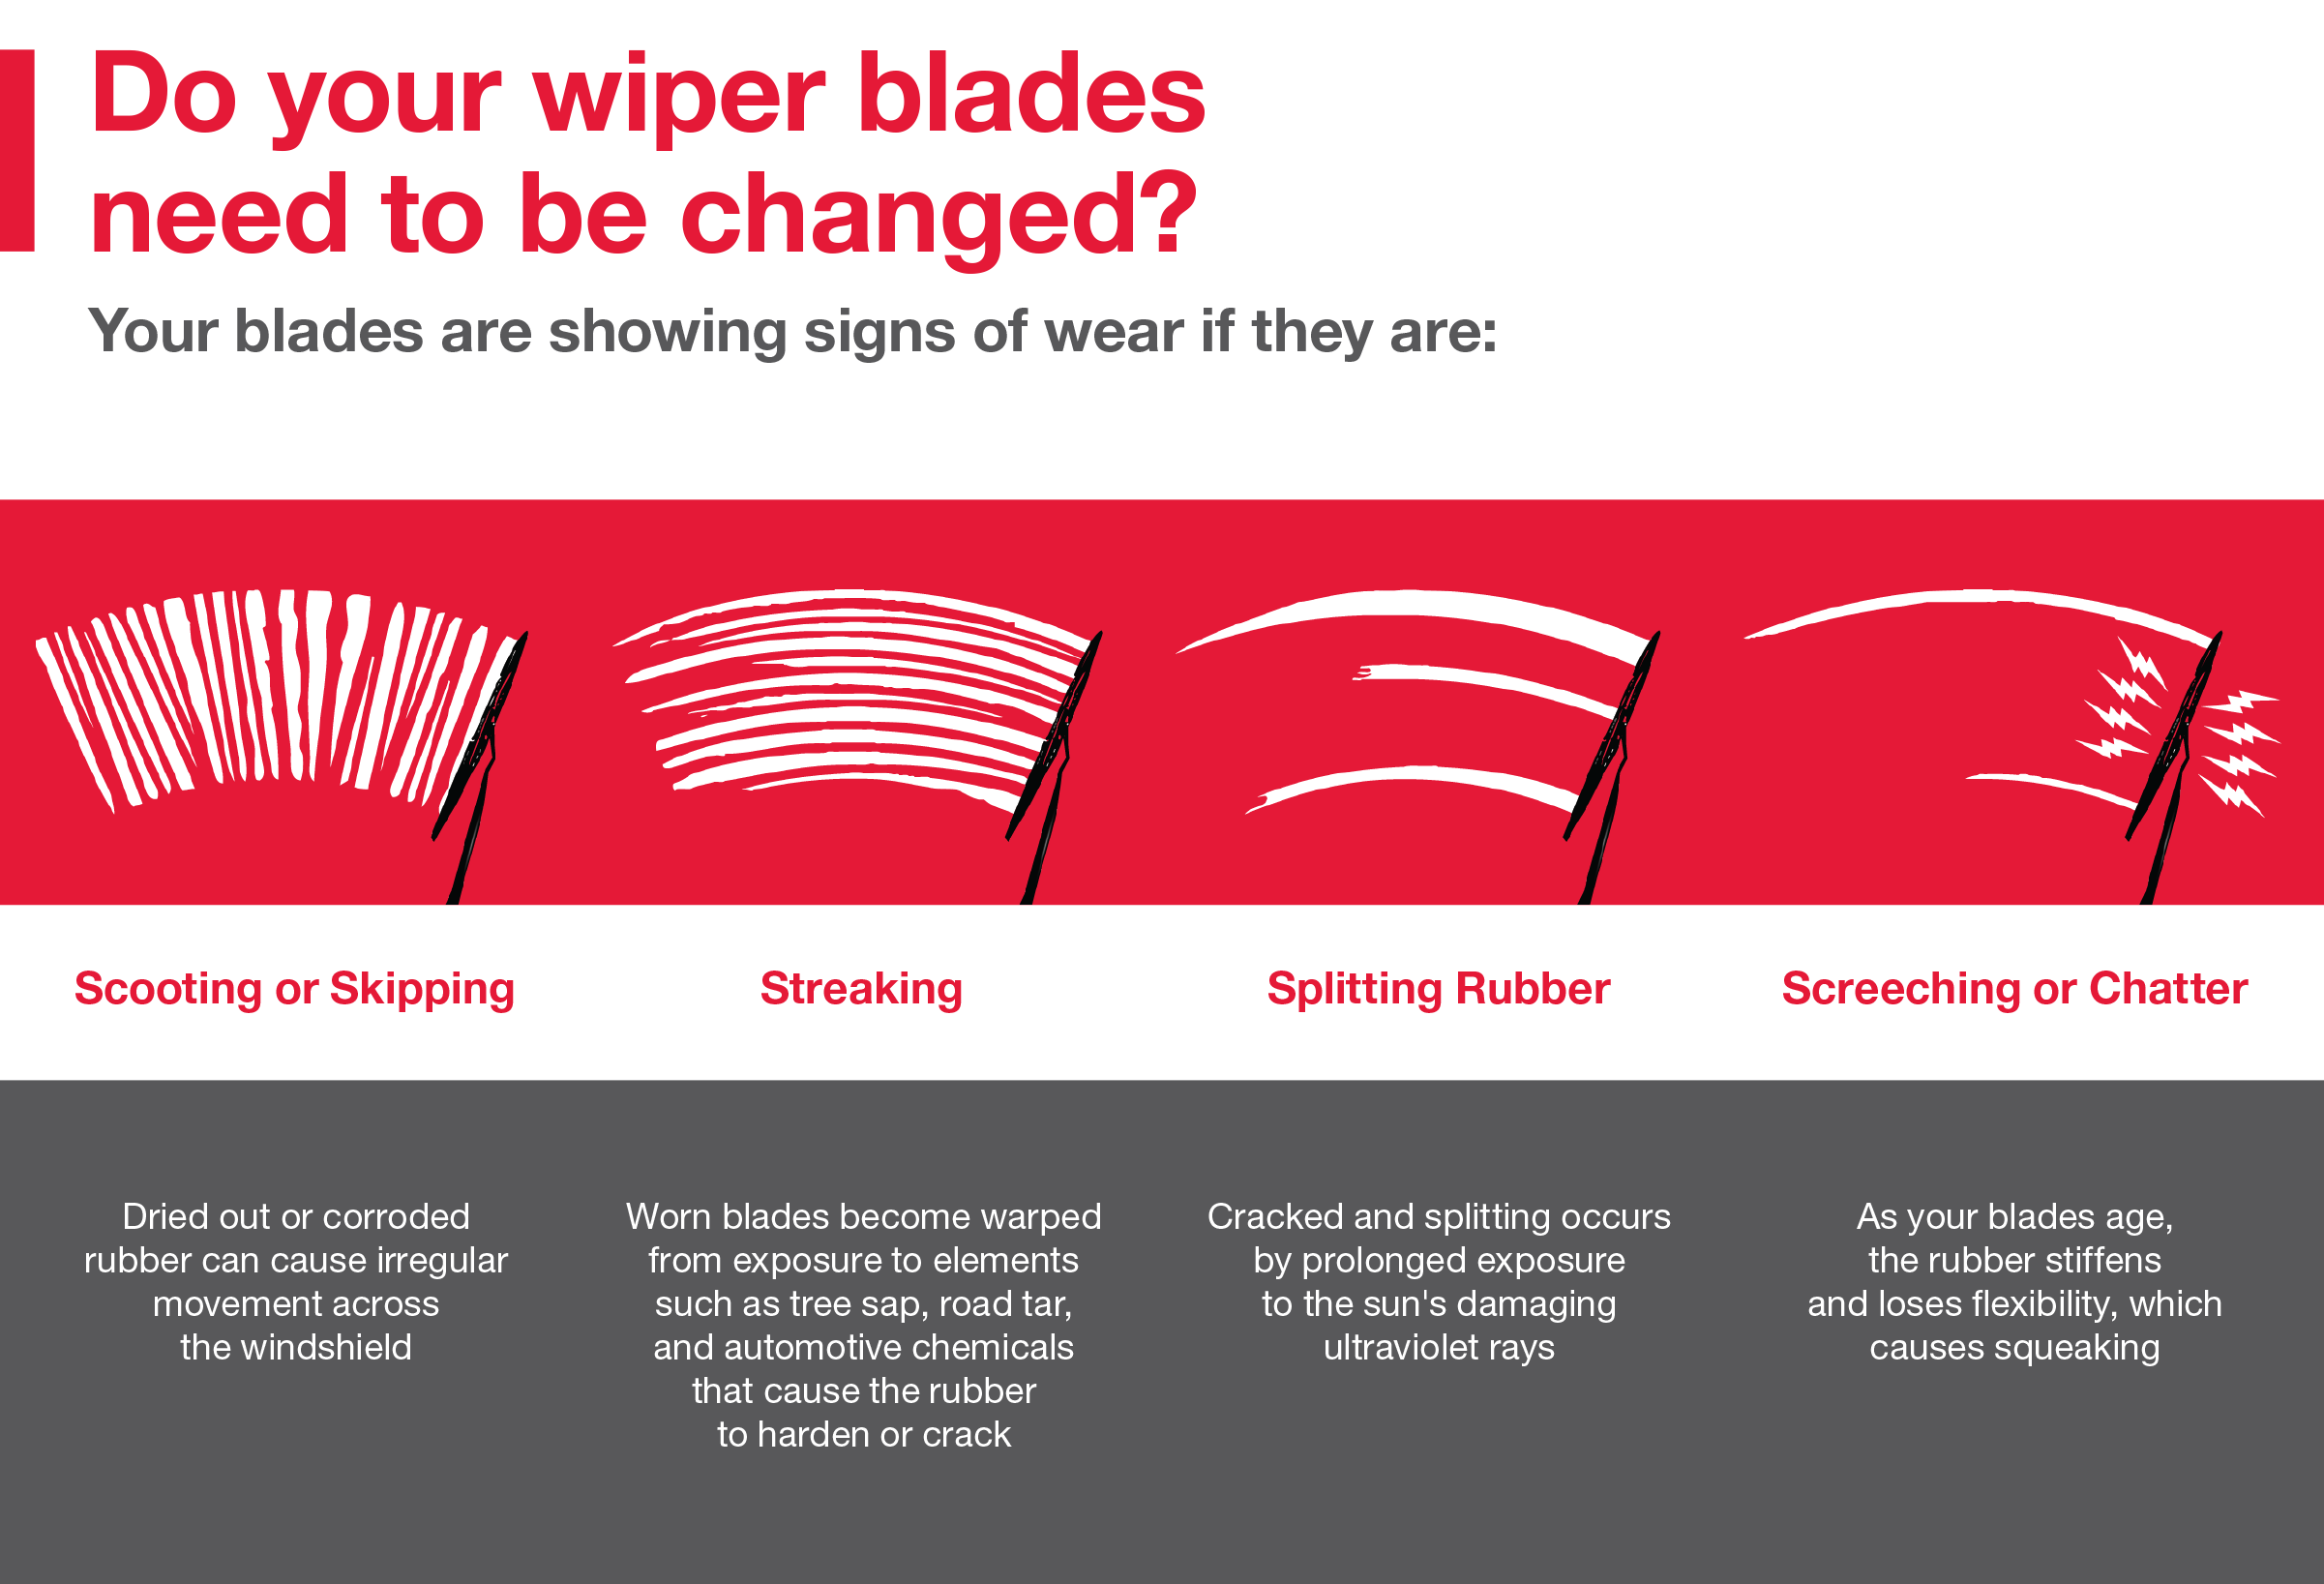 Do your wiper blades need to be changed? Call your local dealer for more info: (858) 581-4501